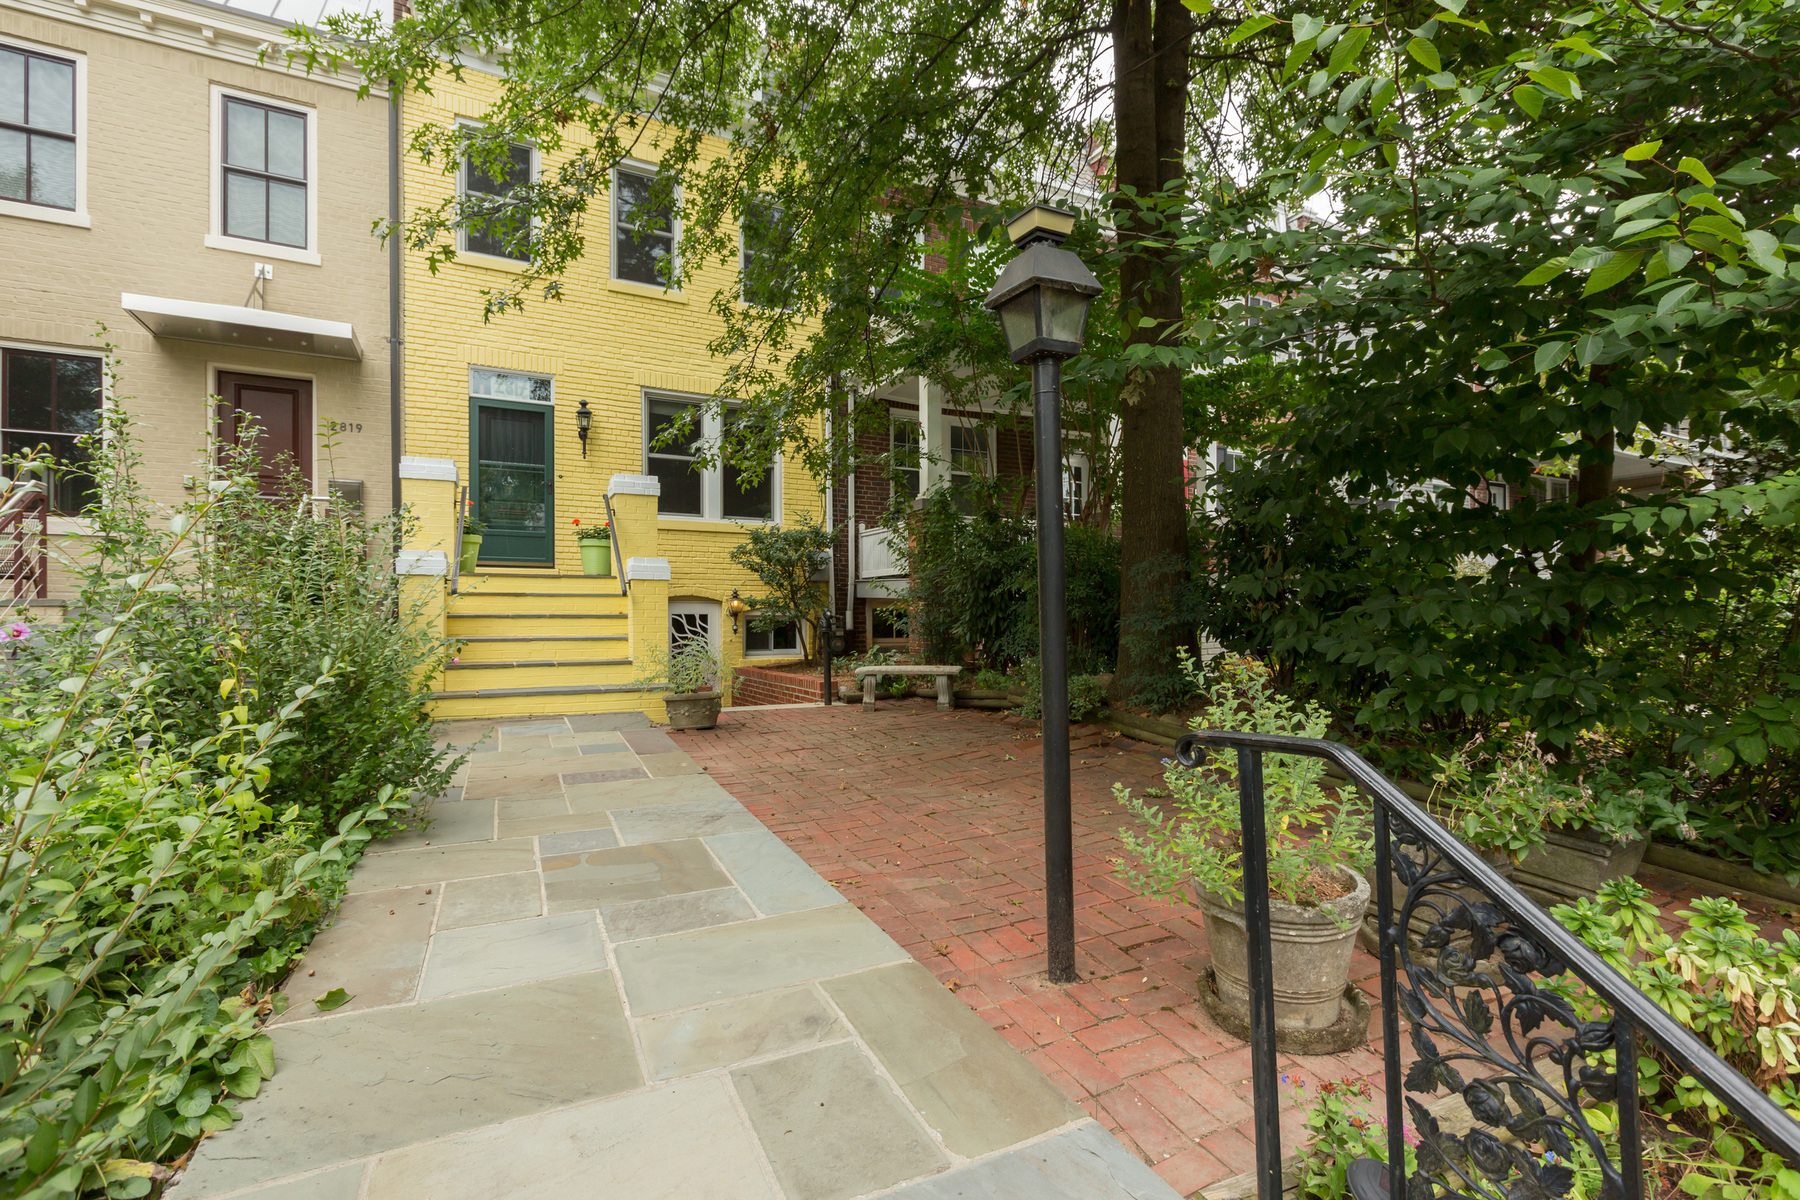 Townhouse for Sale at Observatory Circle 2817 38th Street Nw Washington, District Of Columbia 20007 United States